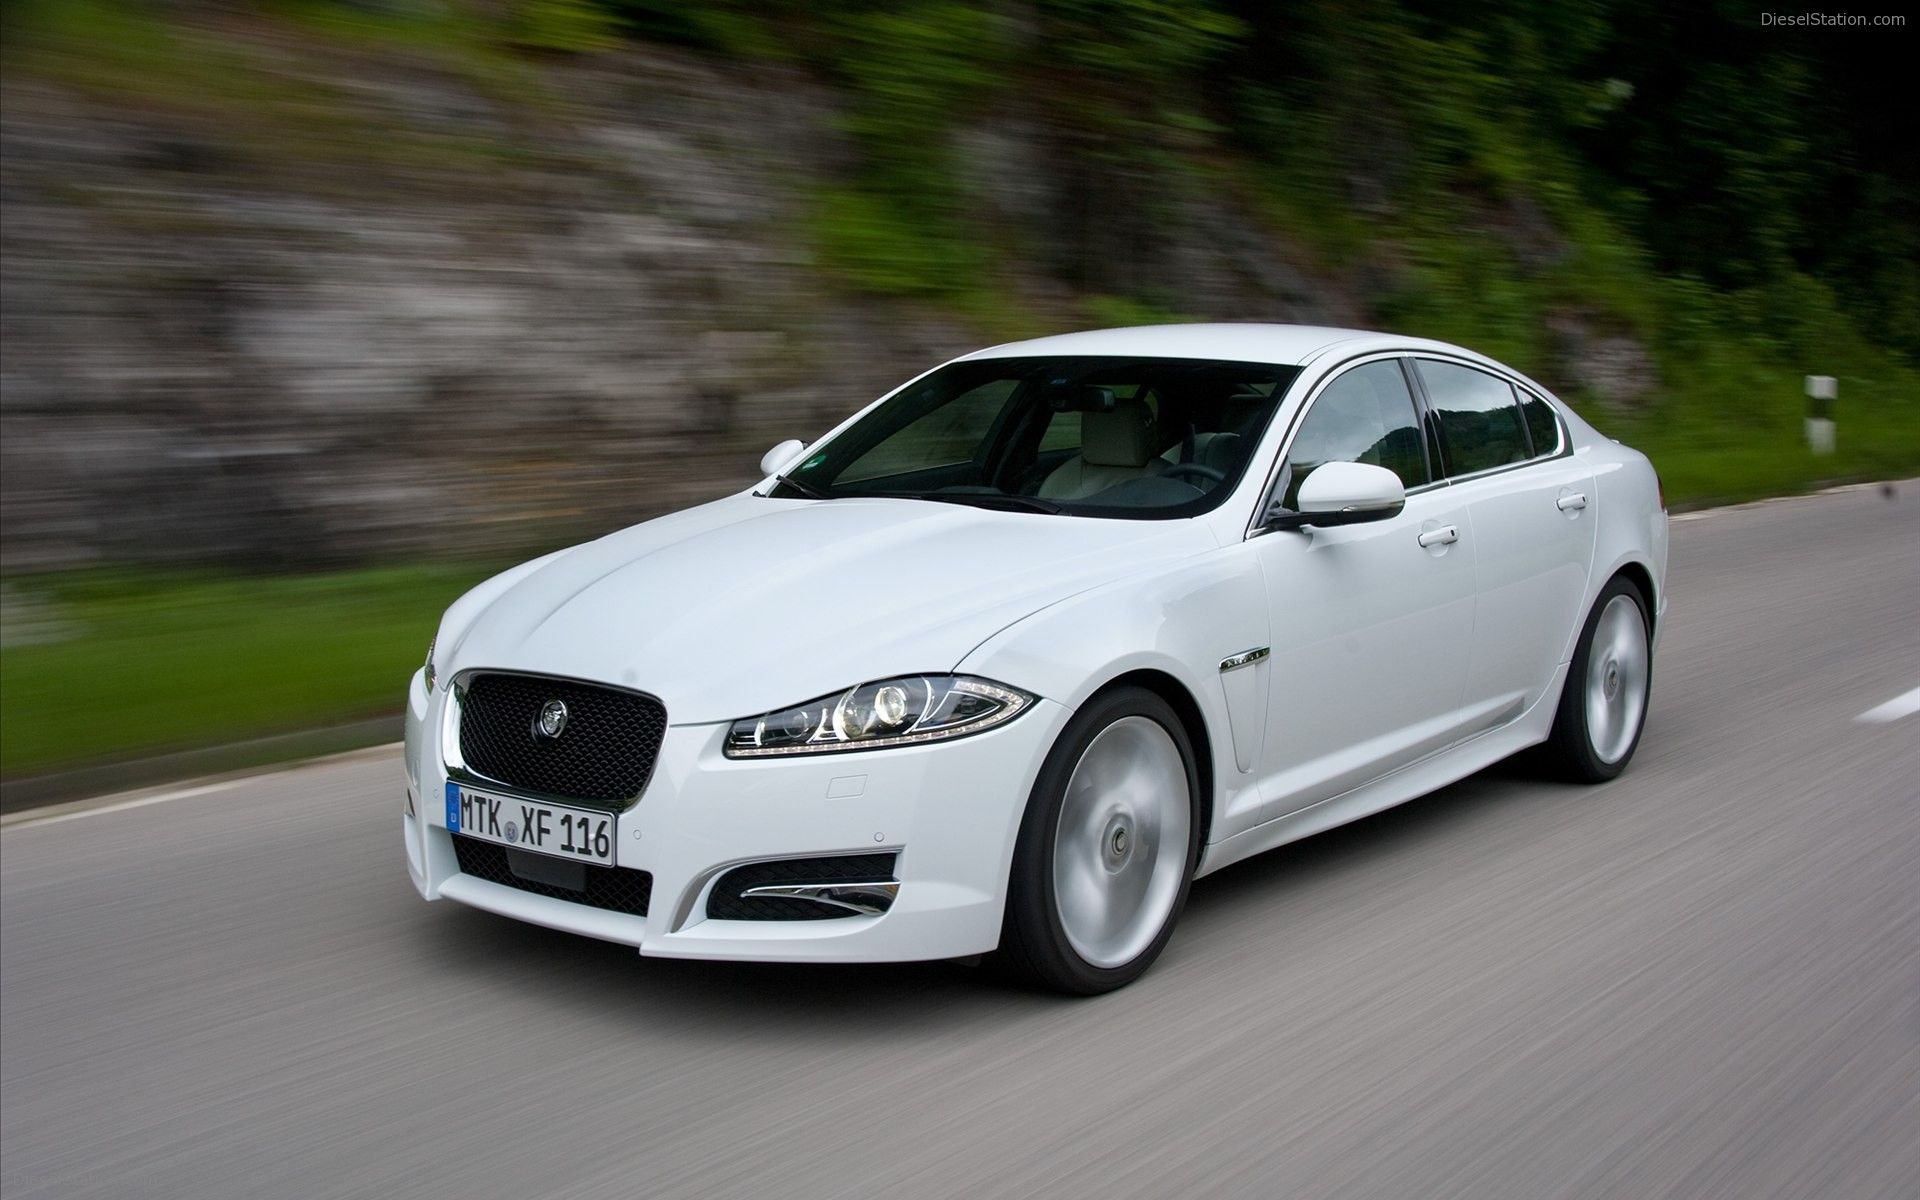 Jaguar Xf White Cars Jaguar Xf White Jaguar Car Jaguar